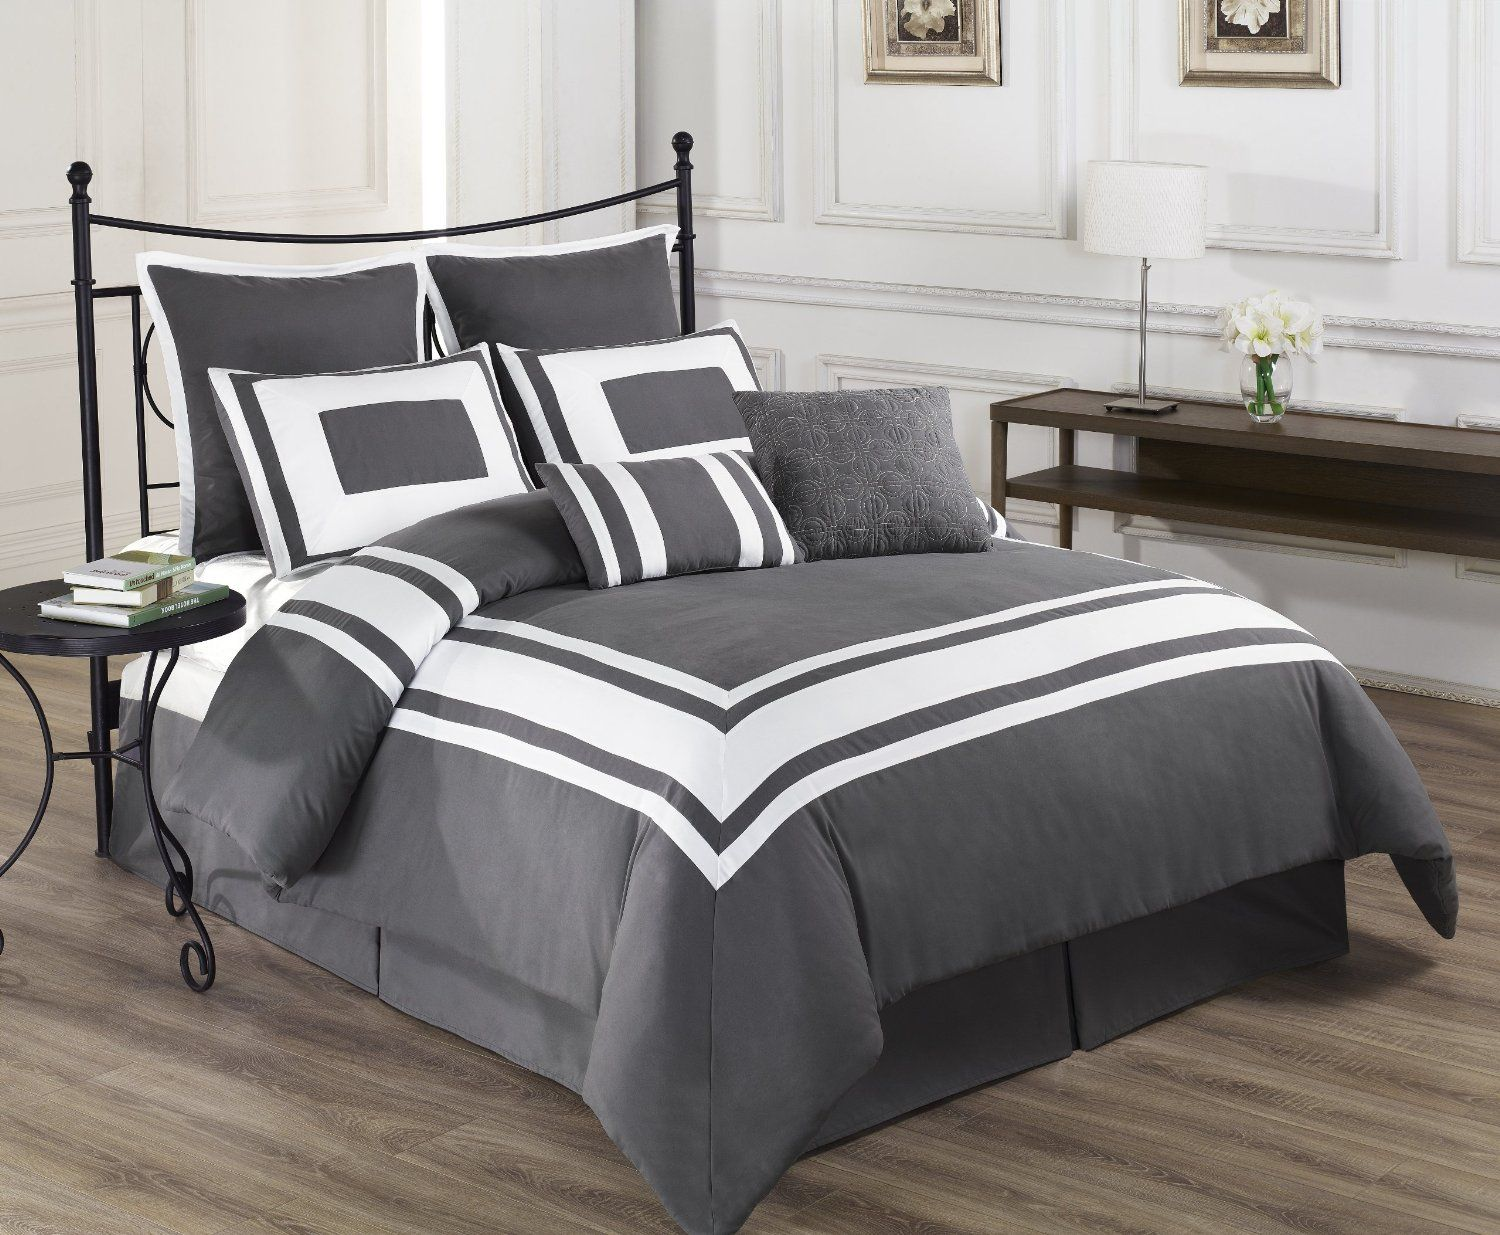 sets comforter red queen bedding white gray set blue bedroom comforters and light grey bed black